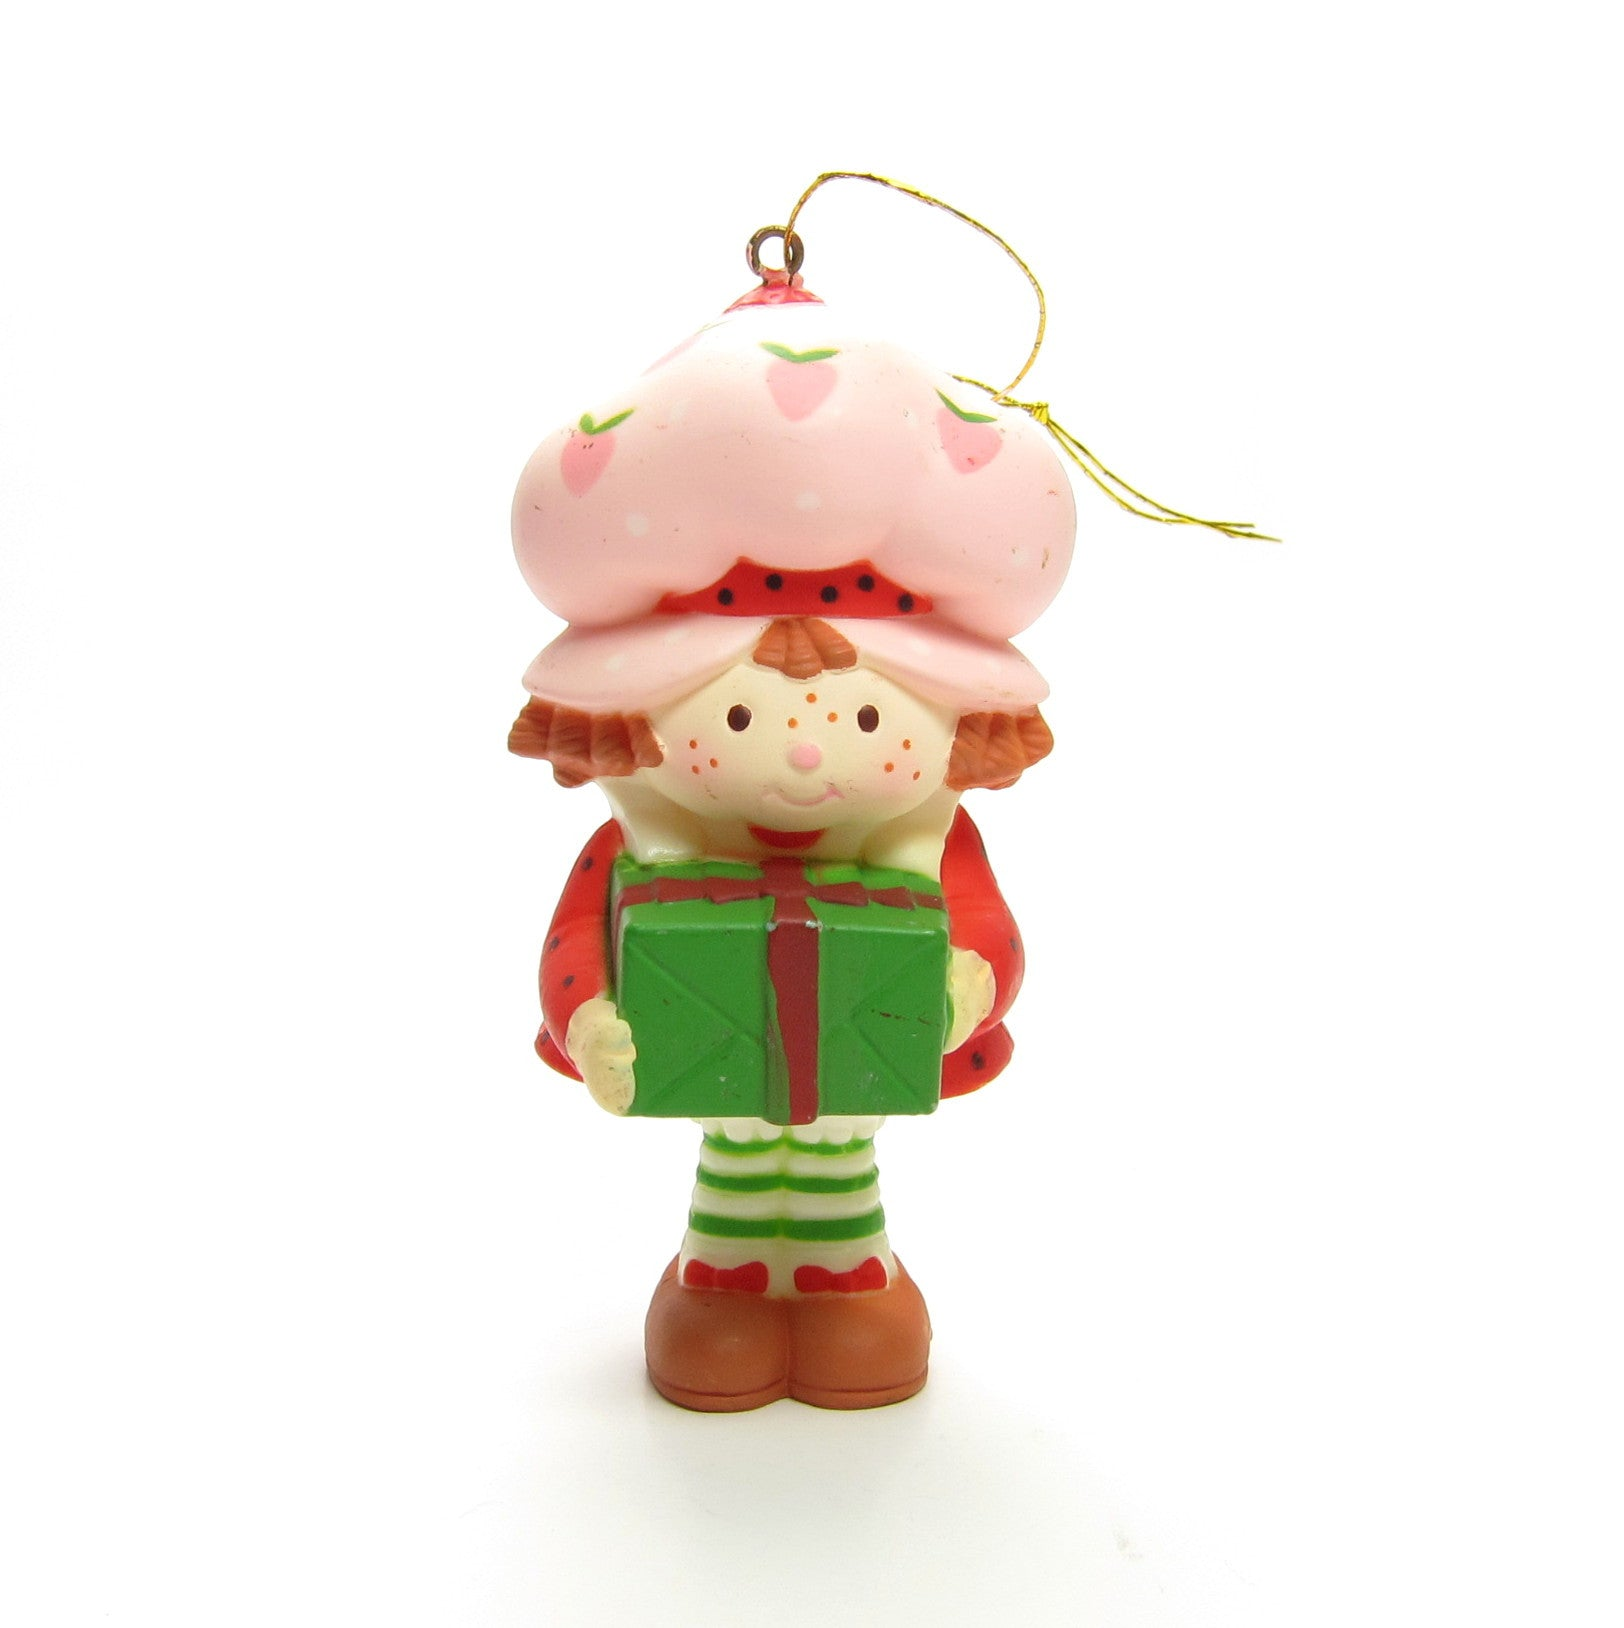 Strawberry Shortcake ornament with present